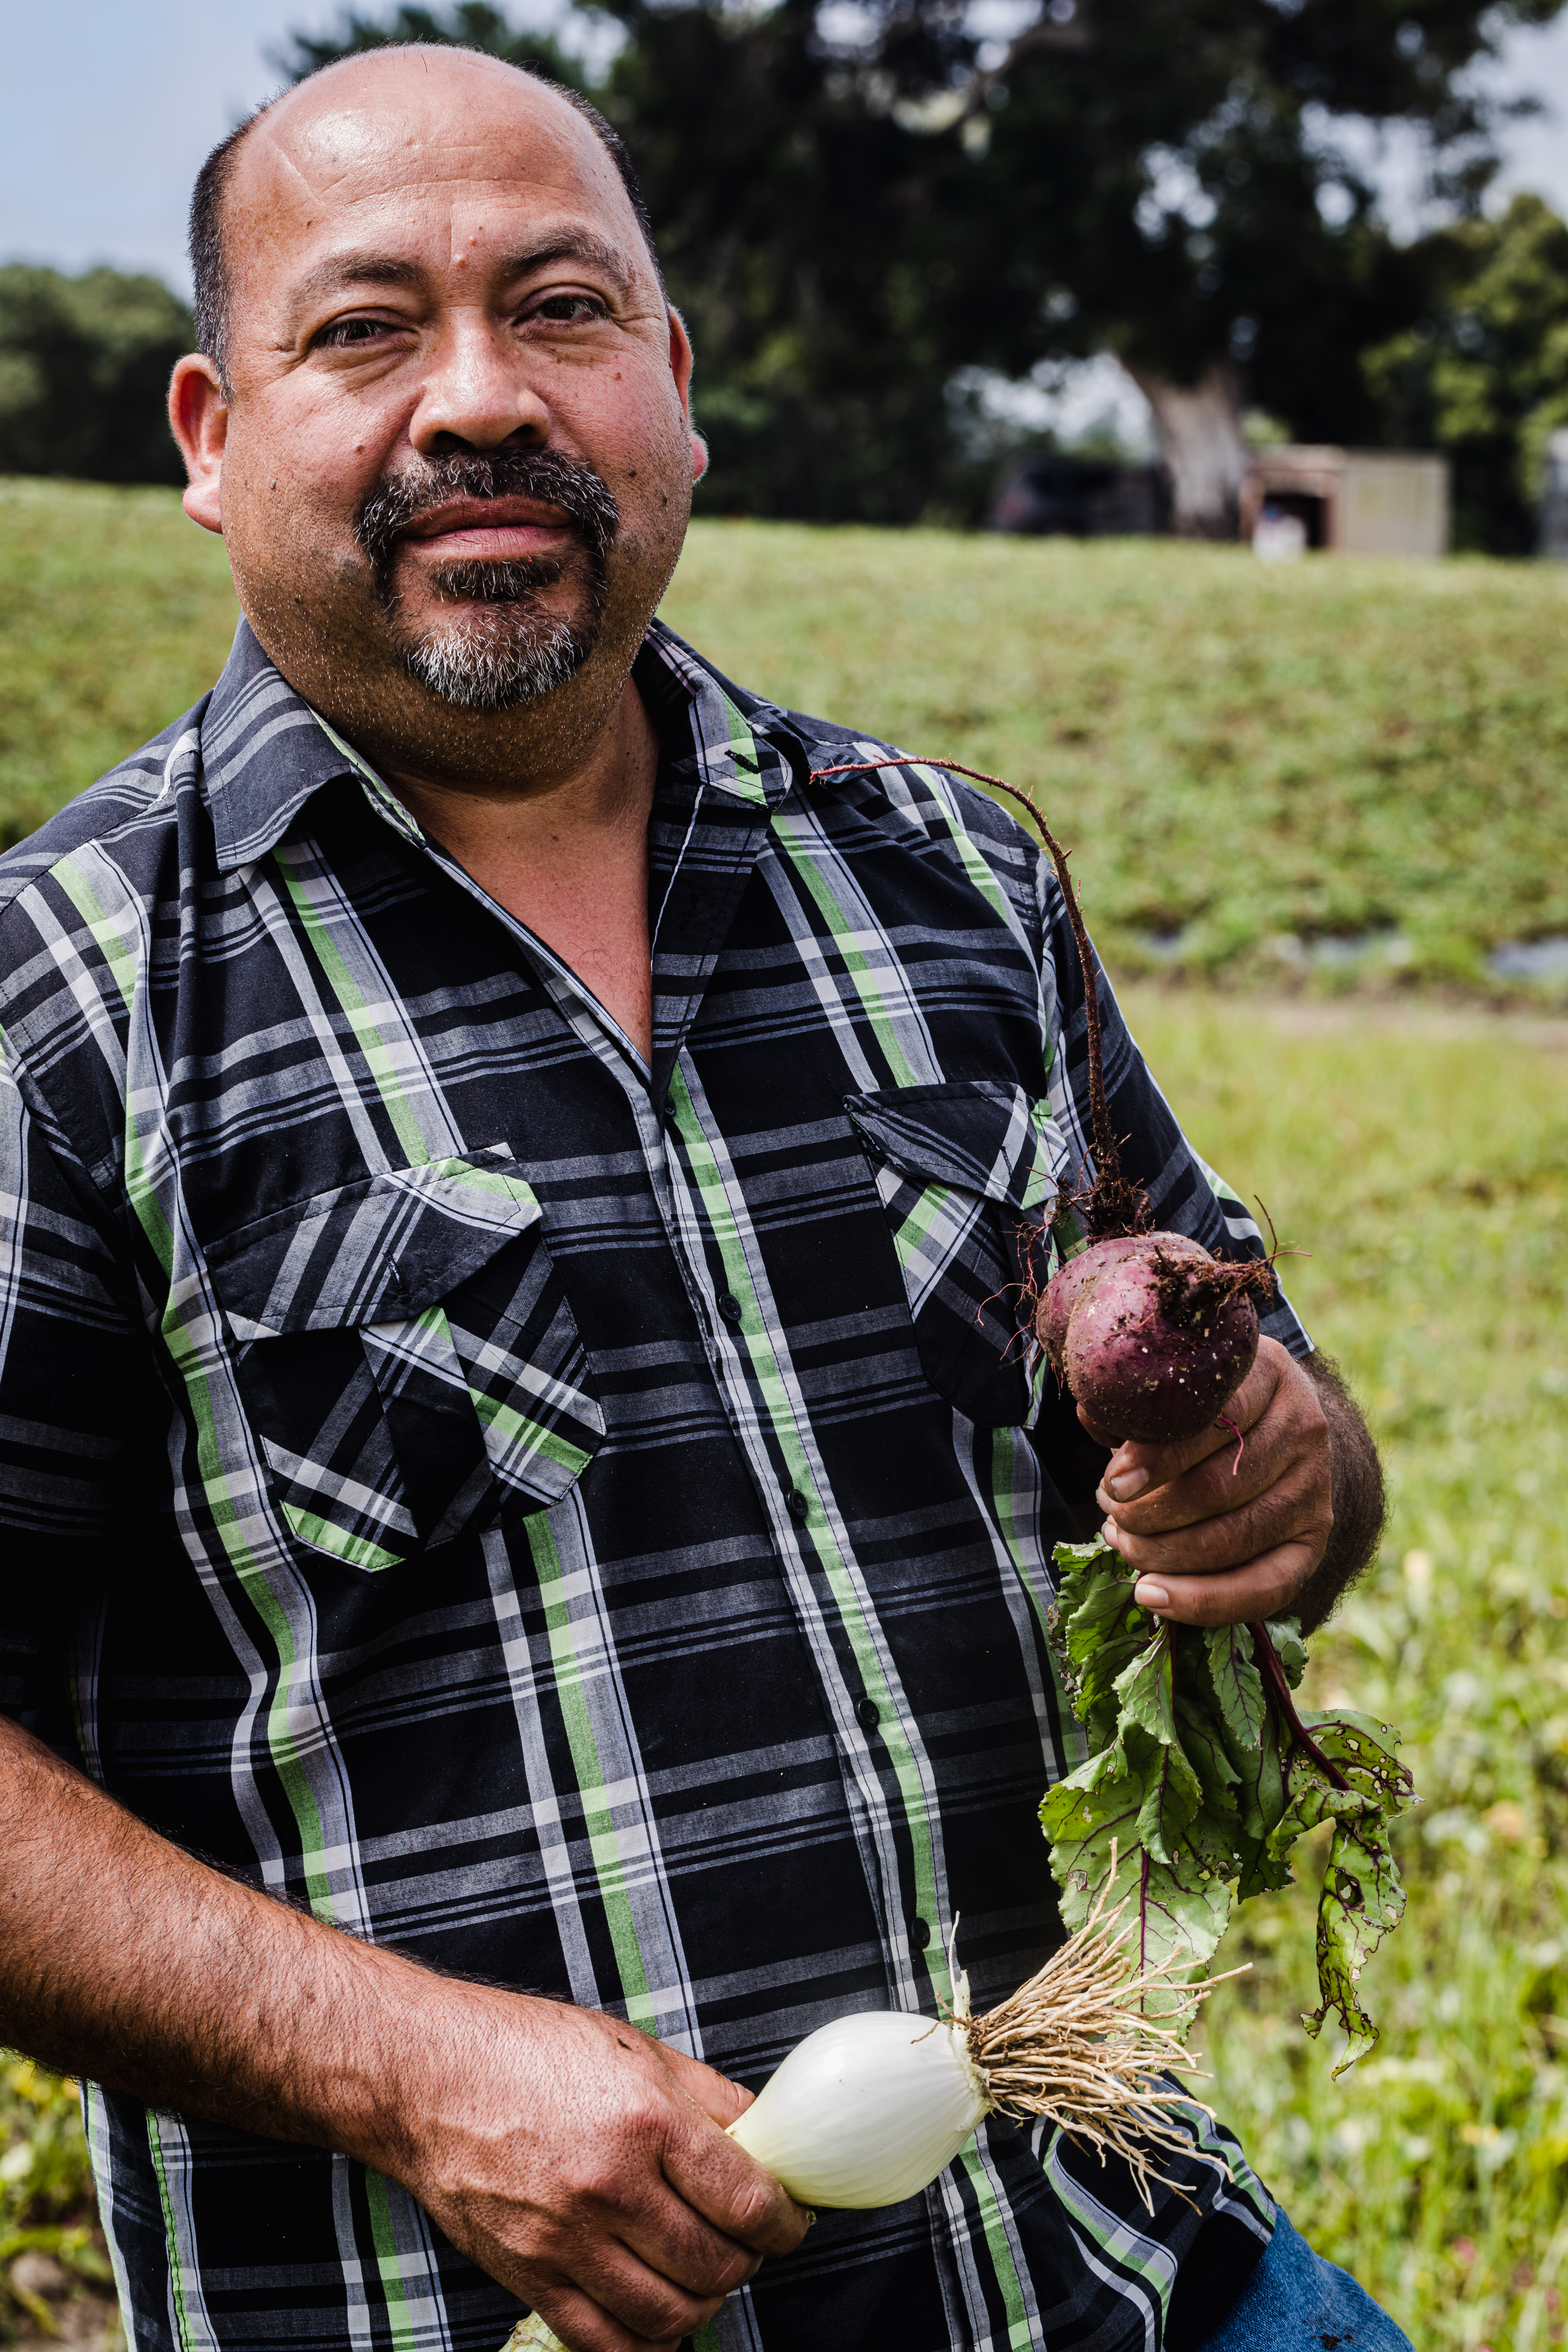 Javier Zamora, of JSM Organics, proudly standing with a freshly harvested beet and onion.